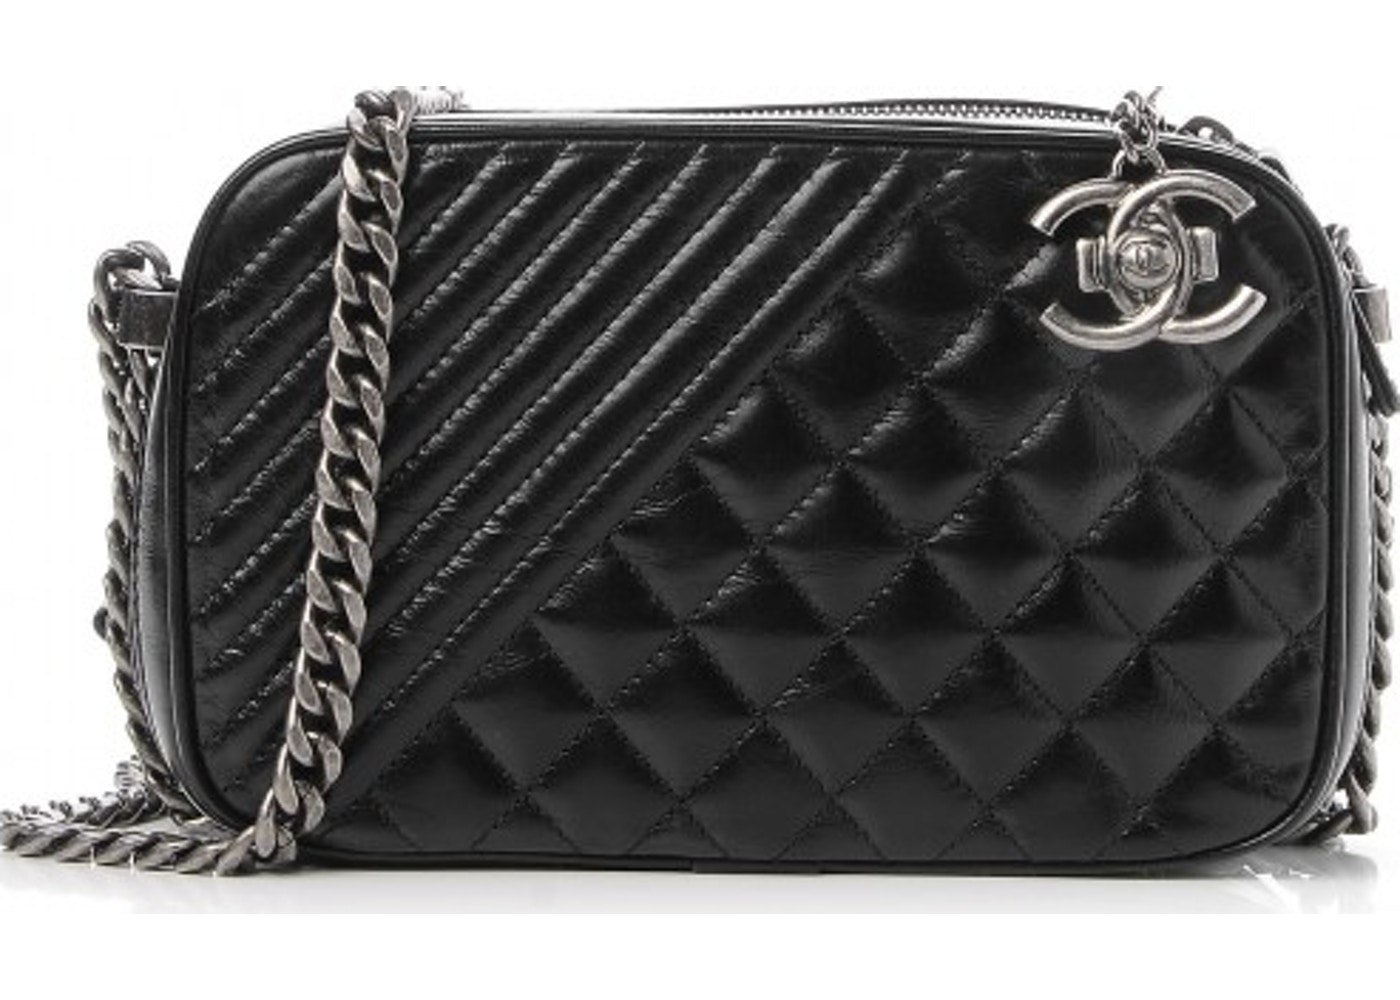 dfc55d8bf789ad Chanel Coco Boy Camera Case Quilted Diagonal/Diamond Glazed Small Black.  Quilted Diagonal/Diamond Glazed Small Black